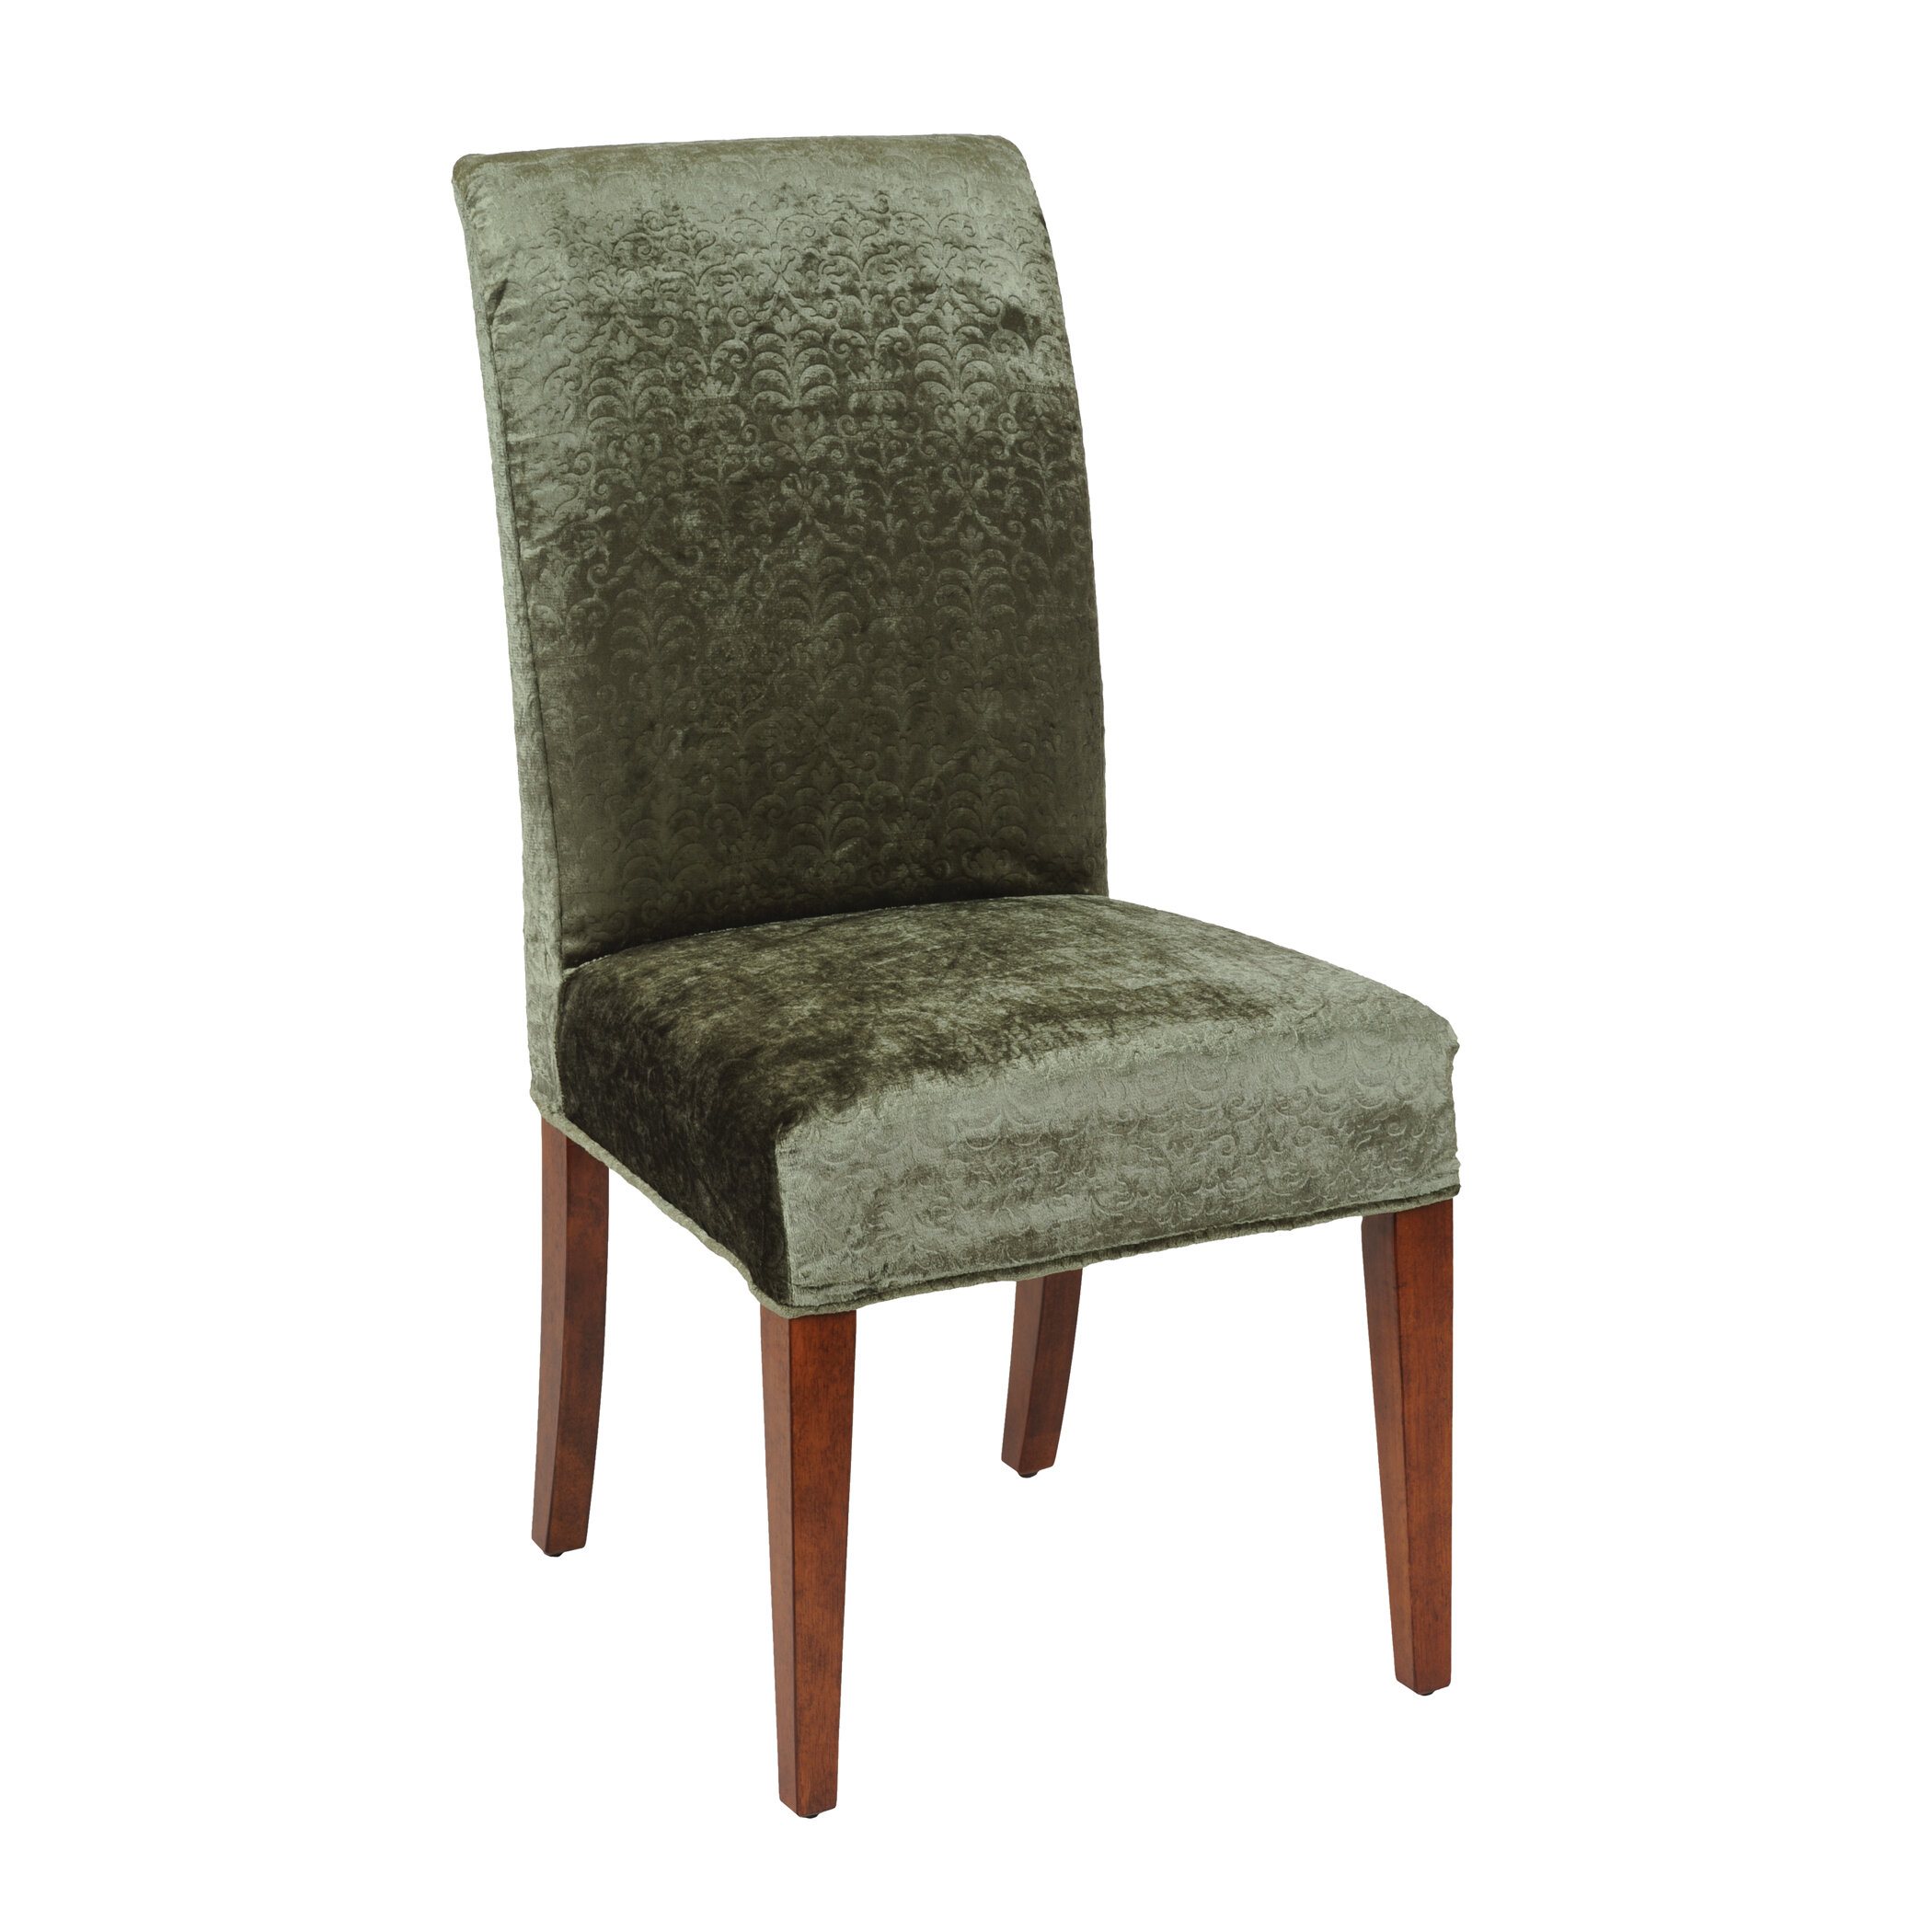 Bailey Street Couture Covers™ Parsons Chair Slipcover U0026 Reviews | Wayfair